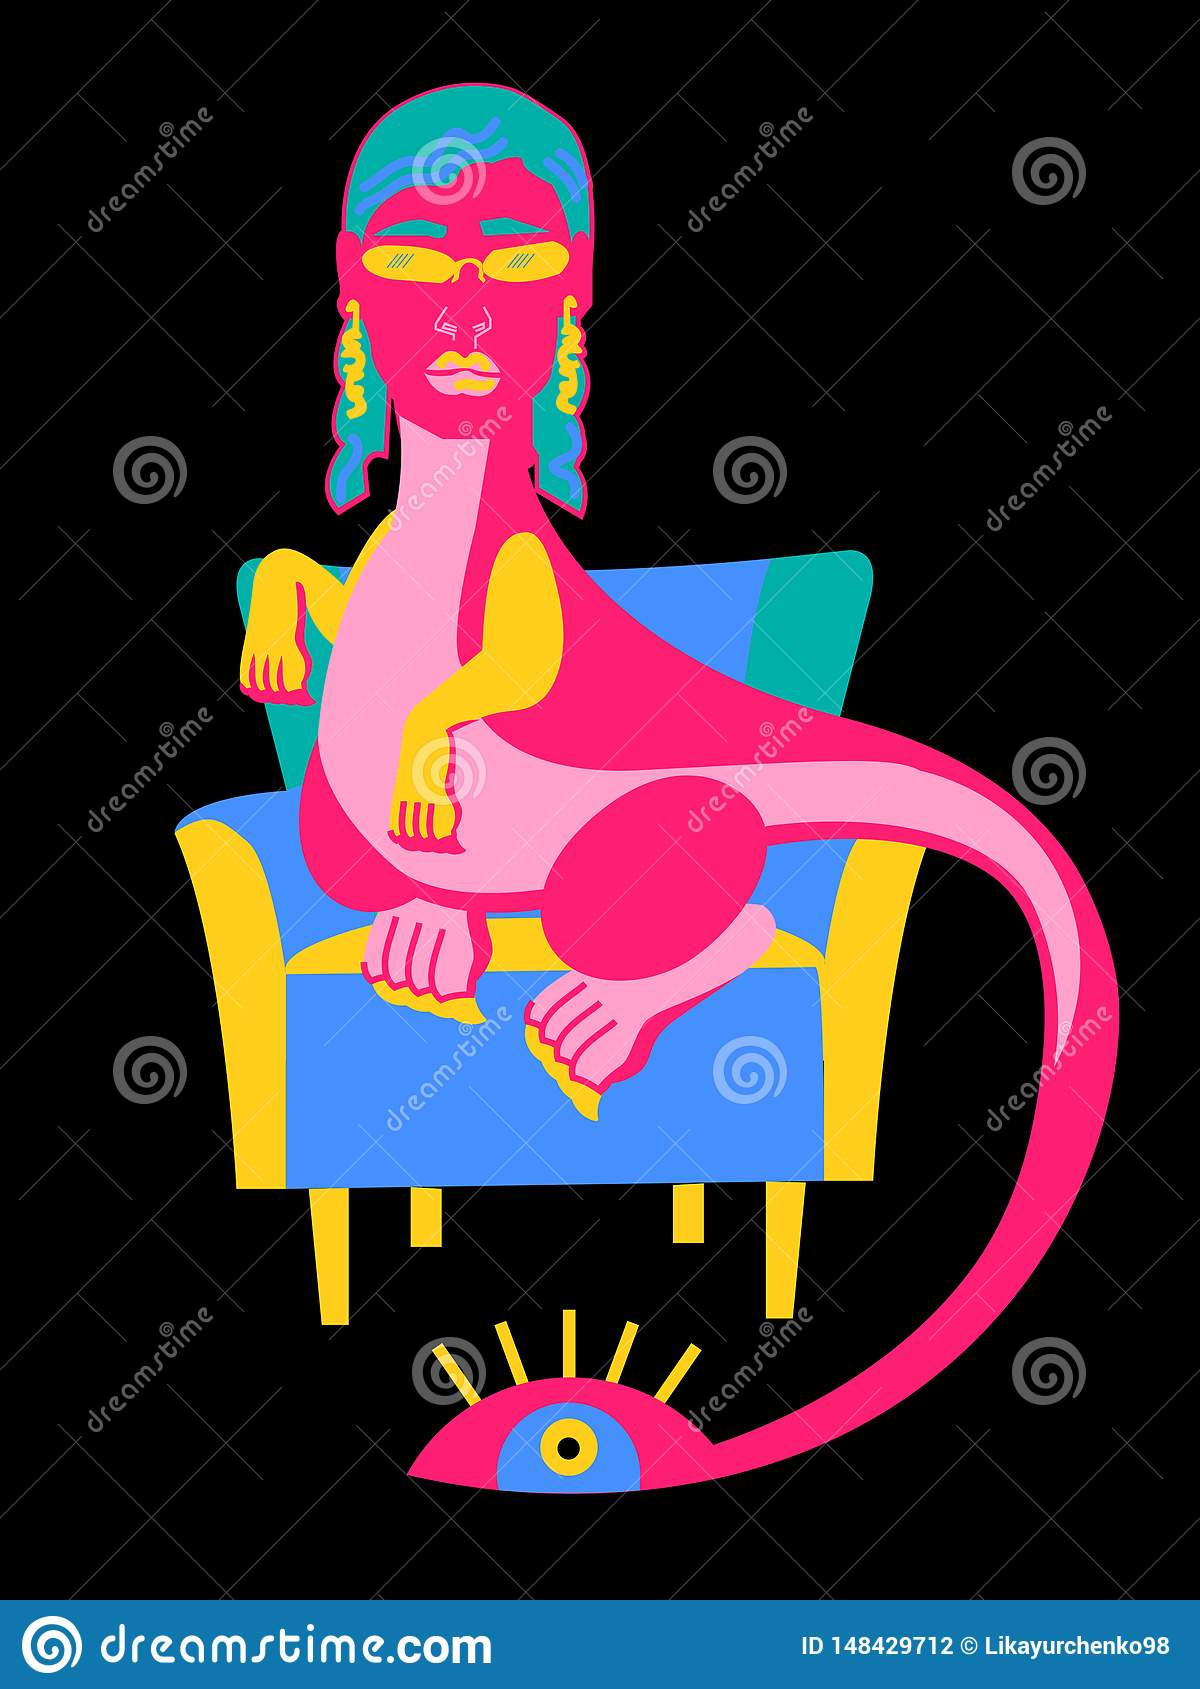 Pink dragon in the chair in the chair